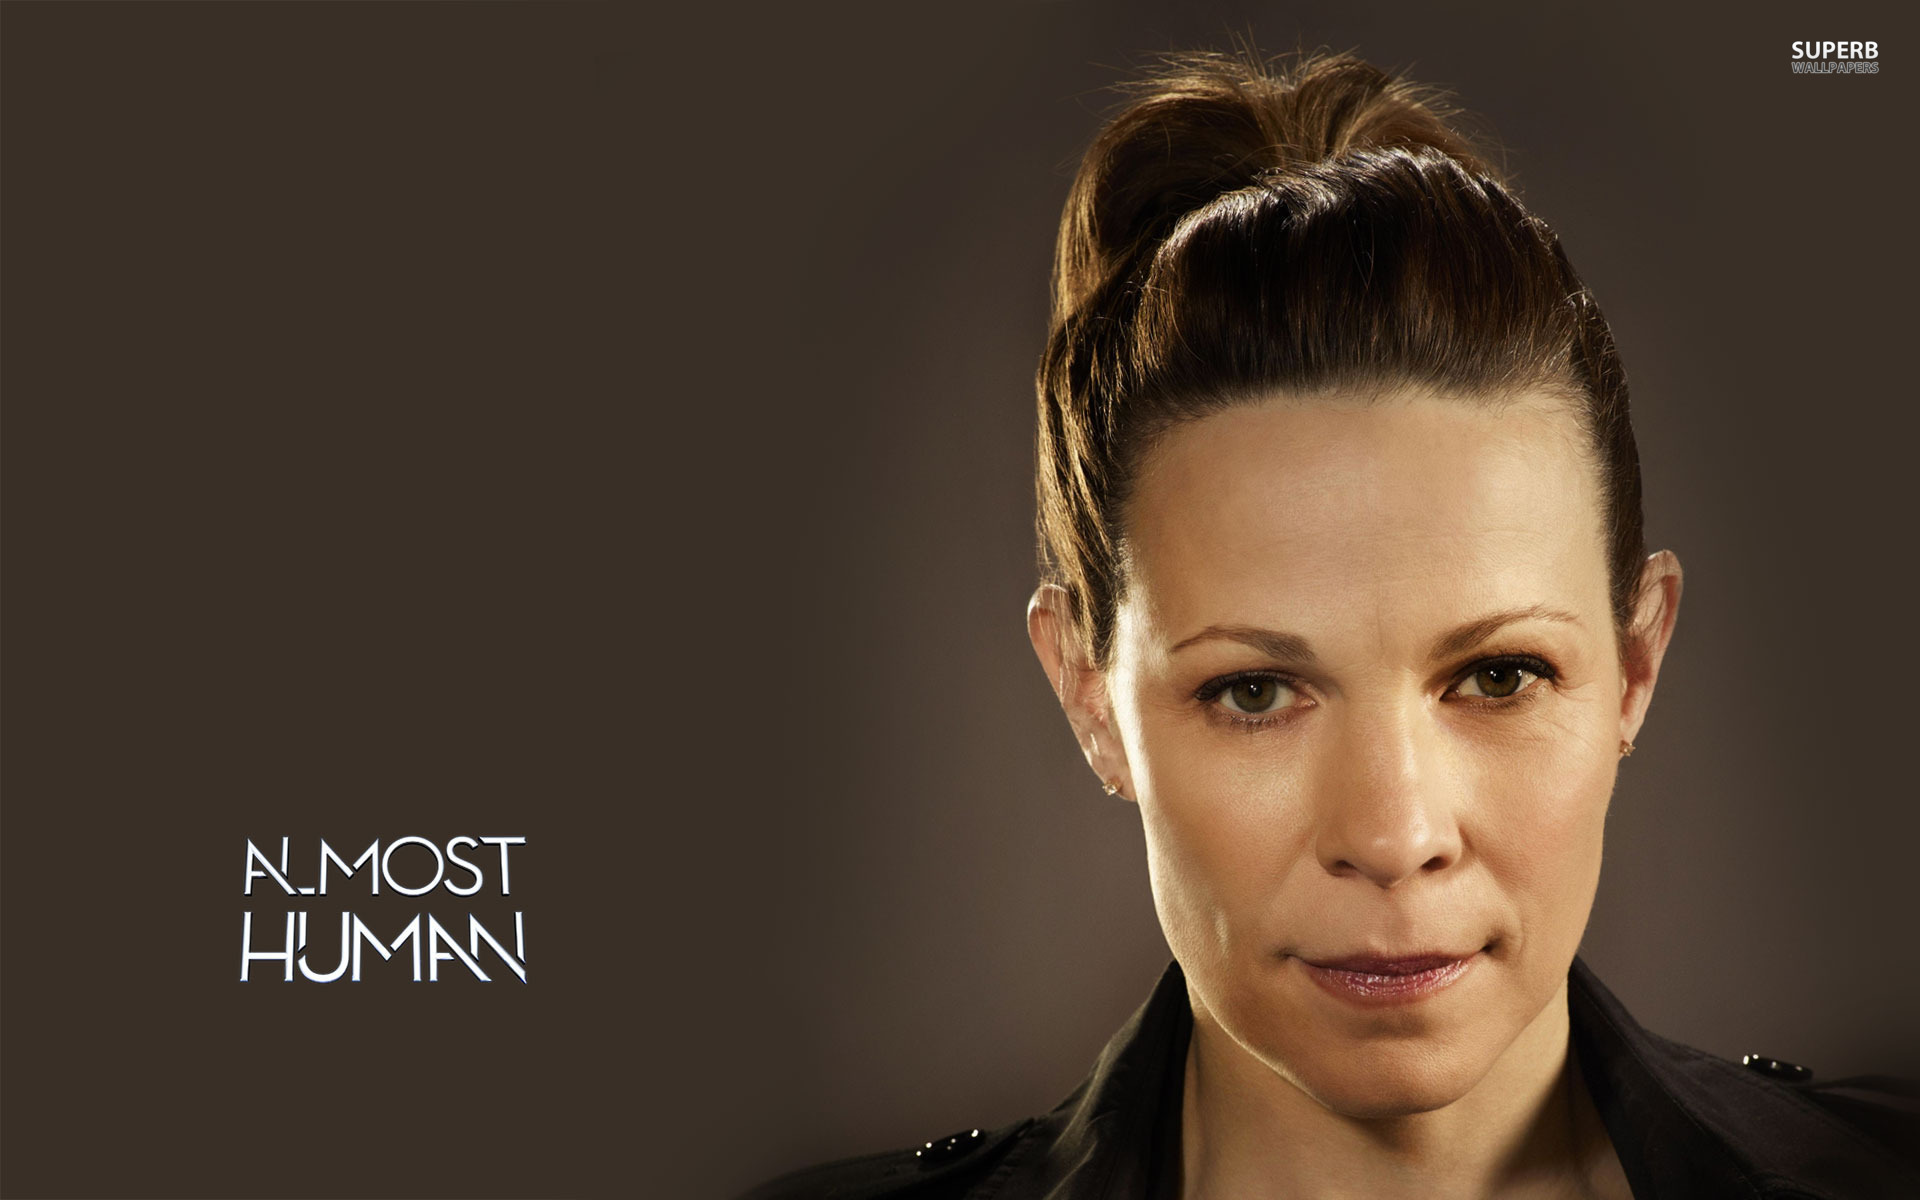 <b>...</b> credit must also go to Lili Taylor, playing Captain <b>Sandra Maldonado</b>. - maldonado-almost-human-24049-1920x1200